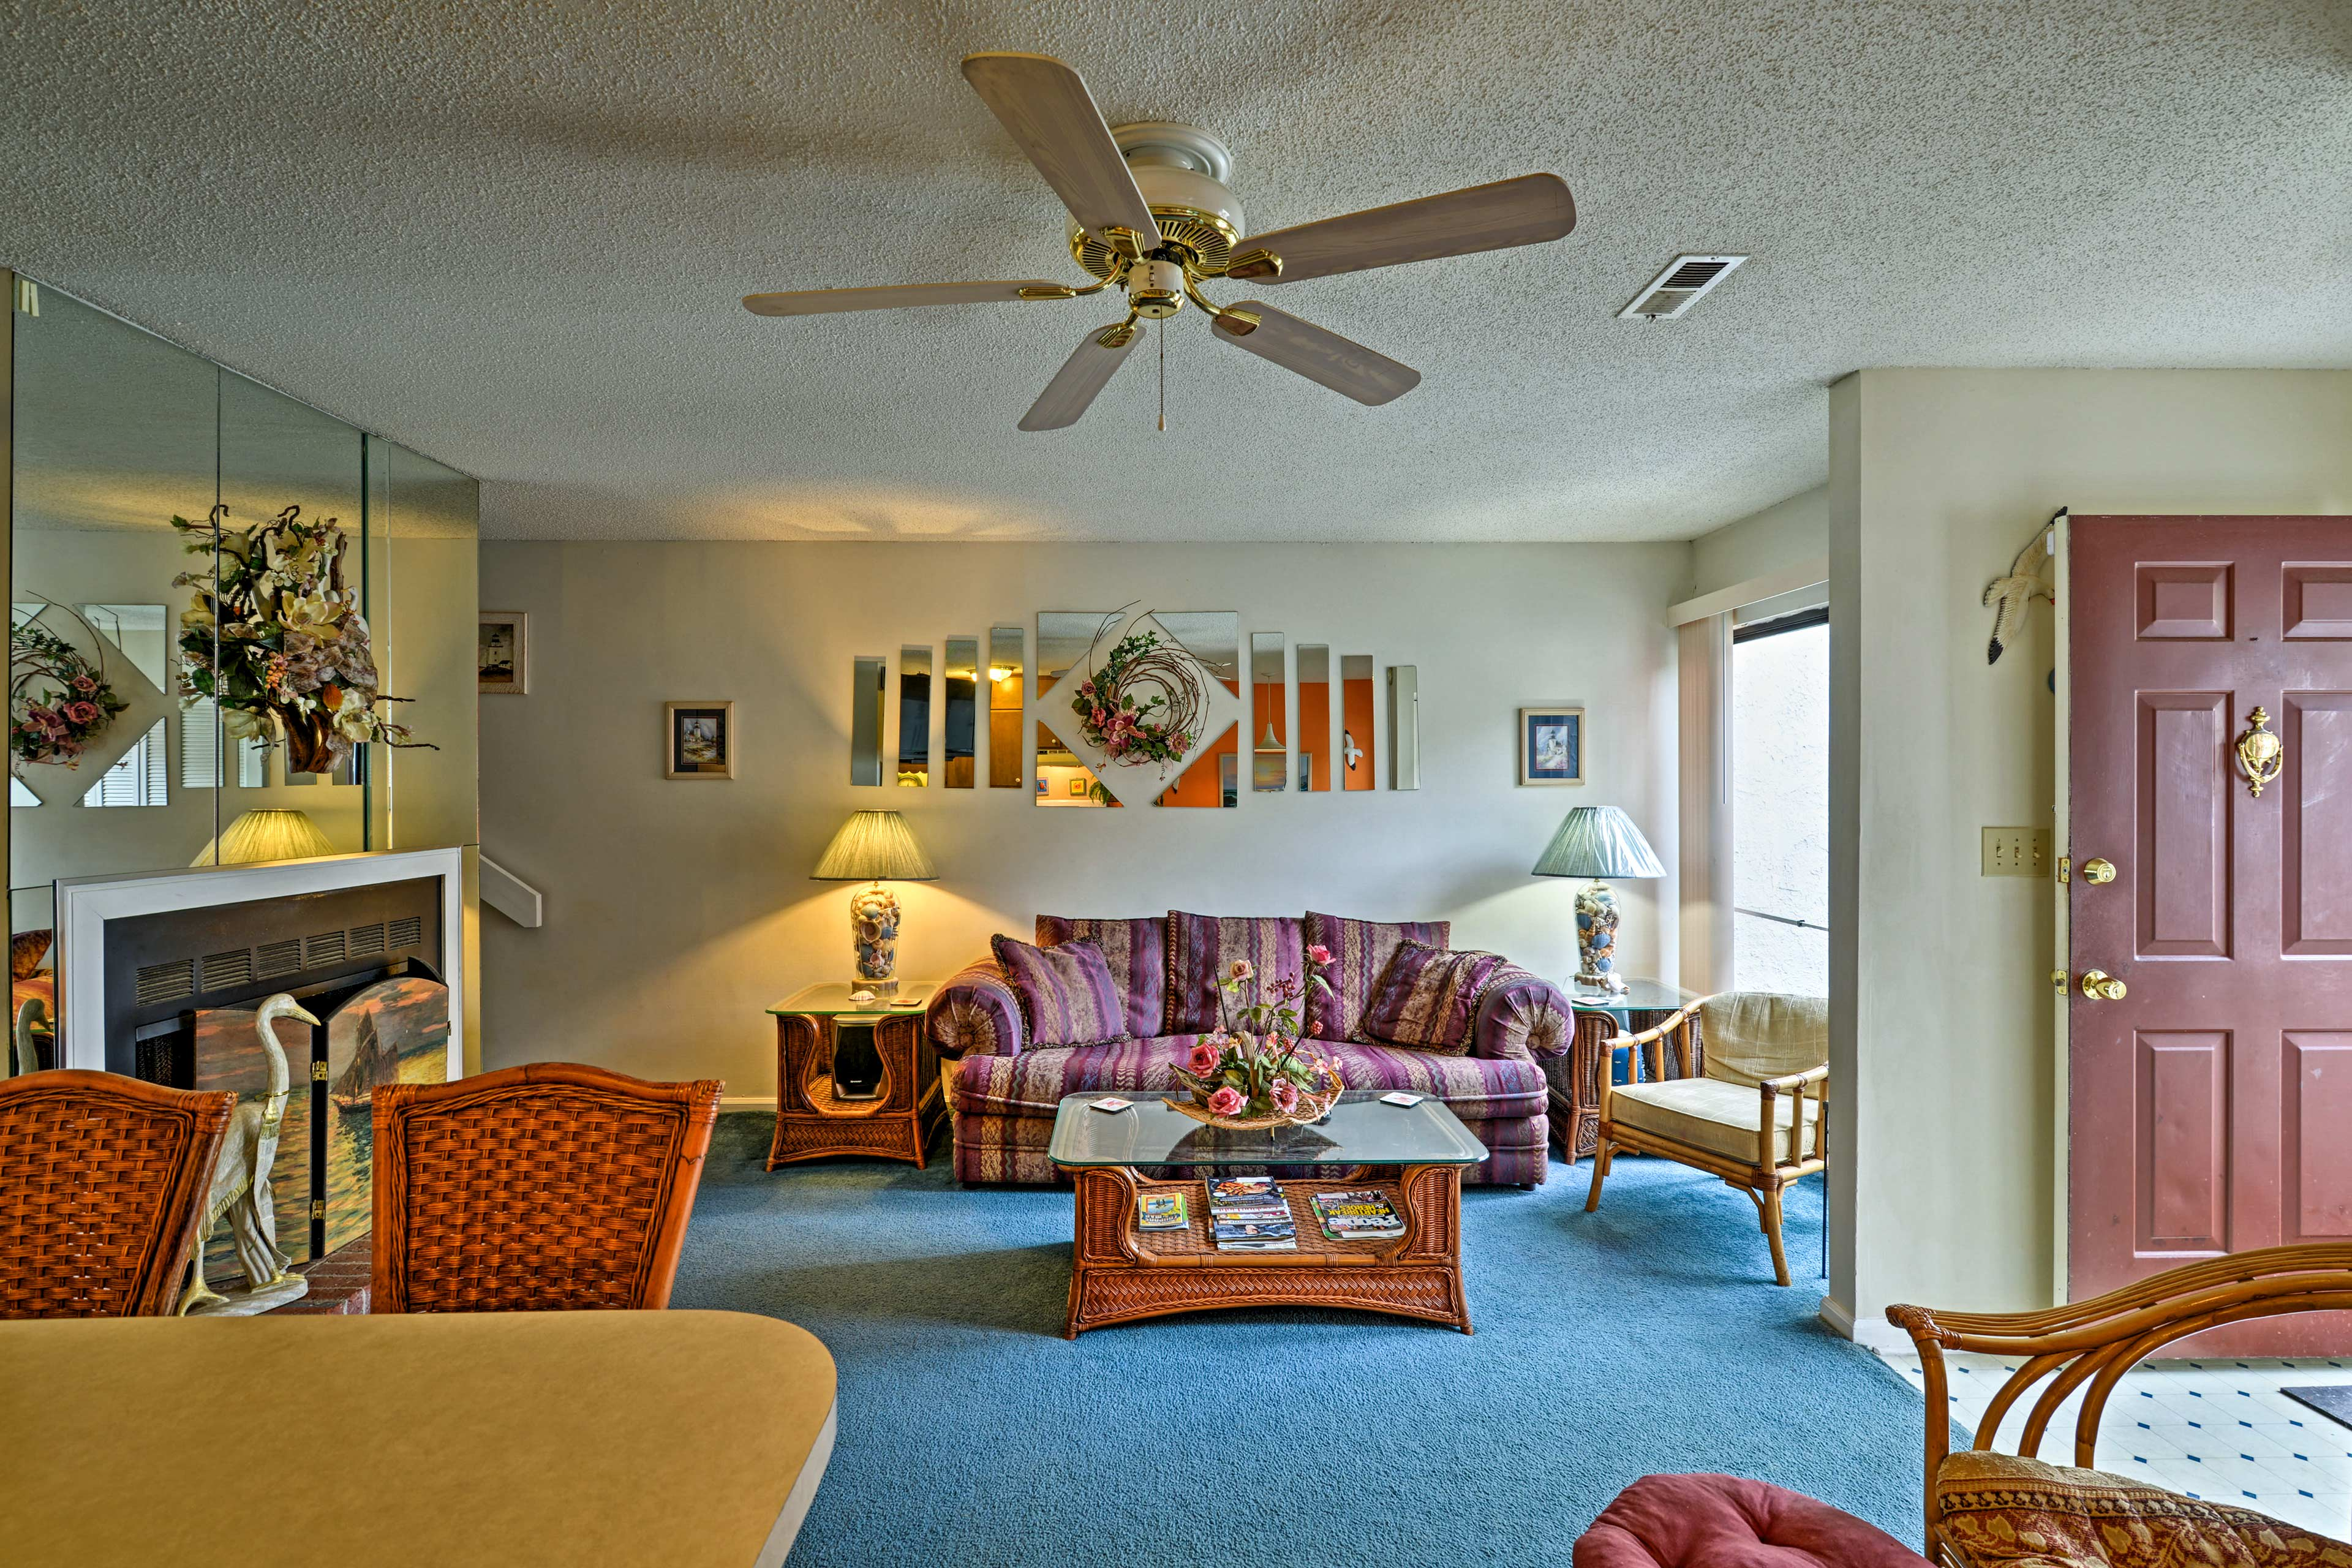 Up to 6 guests can make themselves at home in 1,200 square feet of living space.